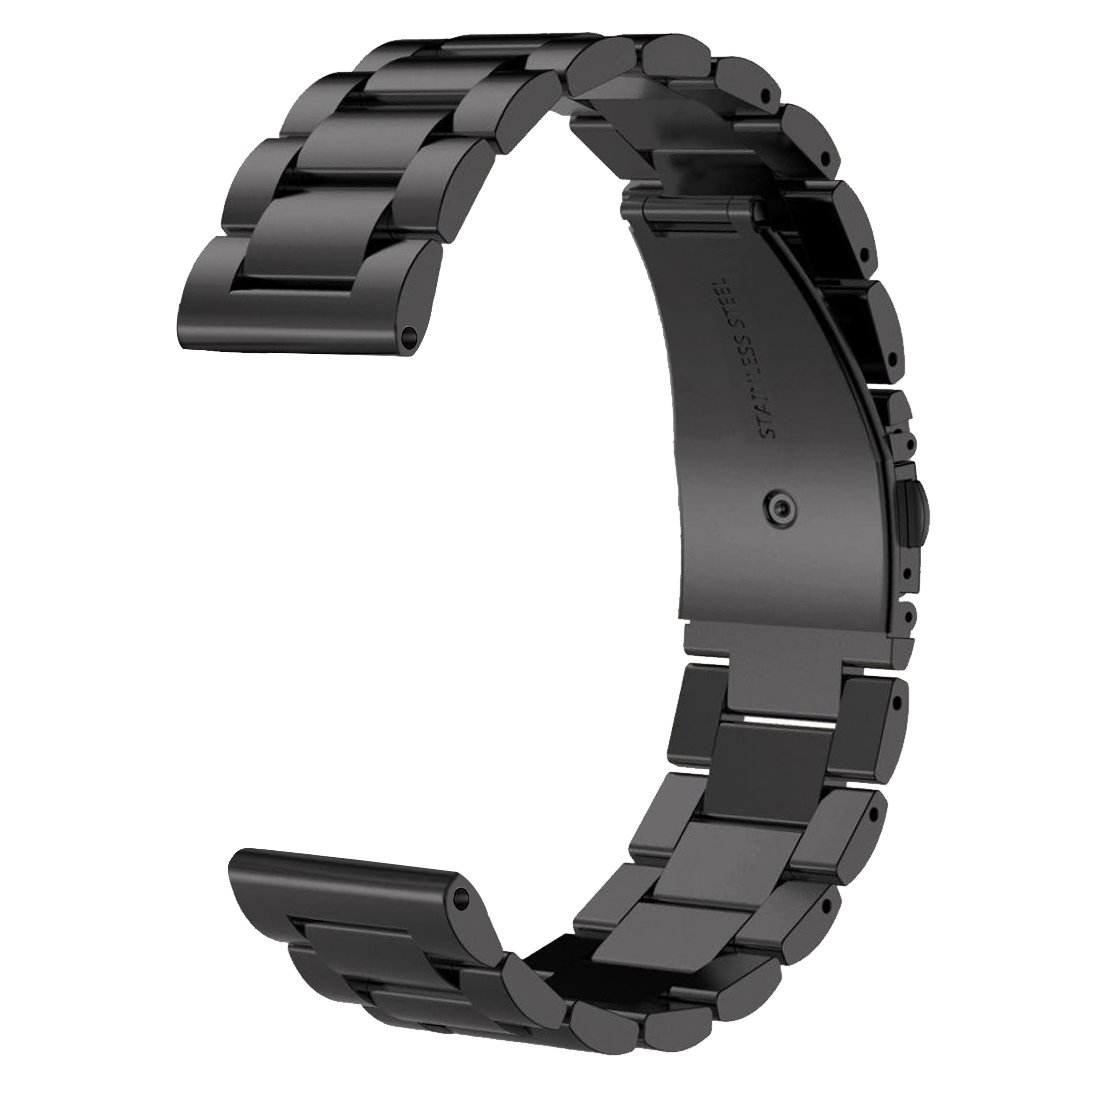 Gear Sport/Gear S2 Classic Band - V-Moro 20MM Metal Black Bands Premium Solid Stainless Steel Business Replacement Bracelet Strap Samsung Gear Sport SM-R600 / Samsung Gear S2 Classic Smartwatch